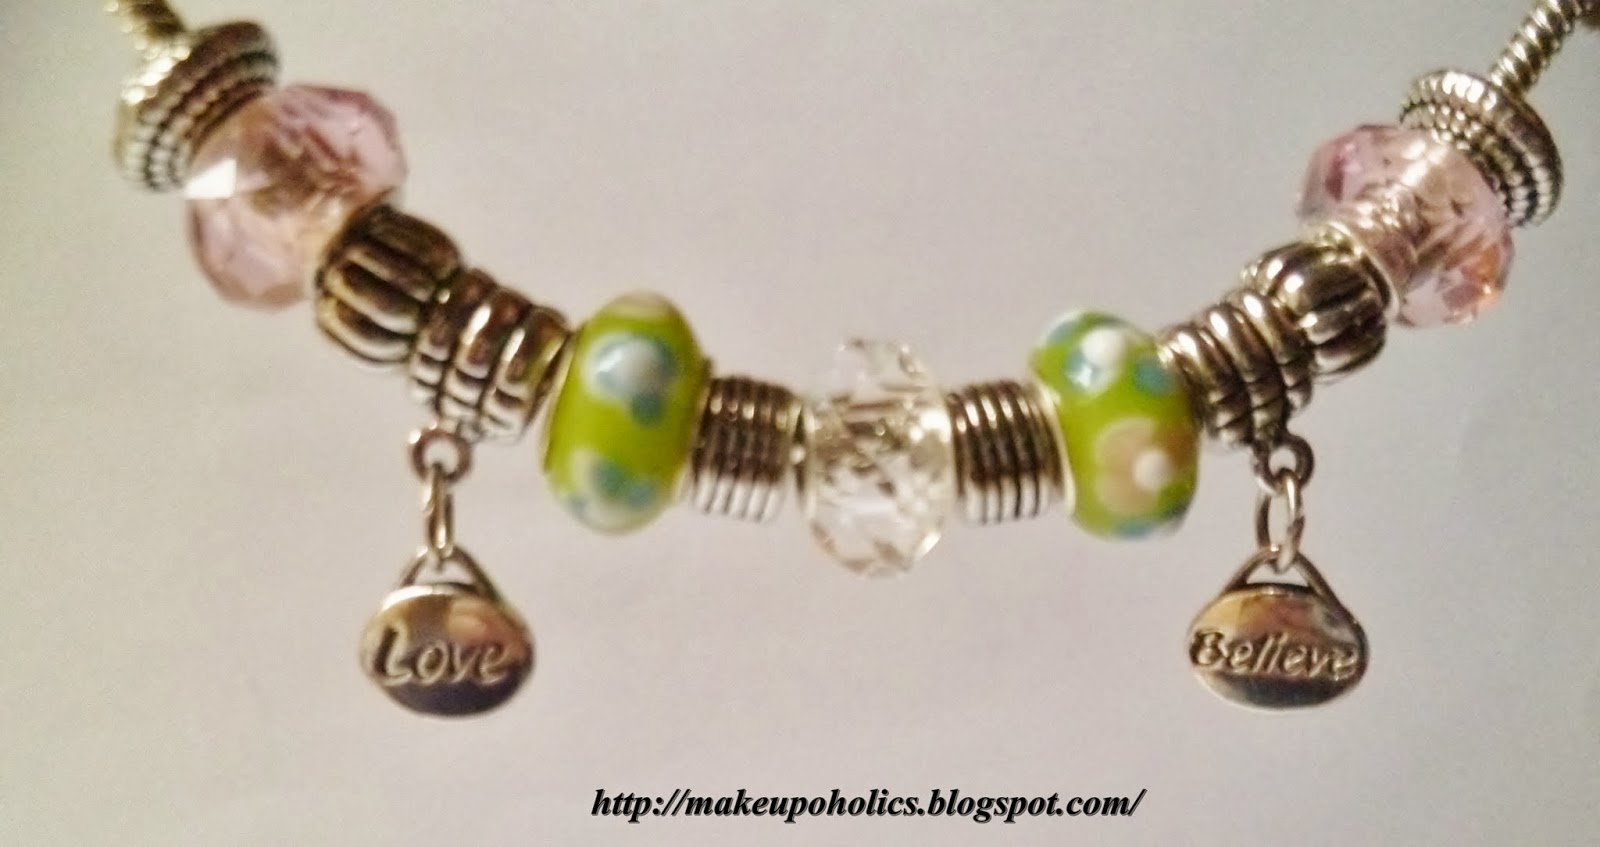 LOVE and BELIEVE Beaded Bracelet By Charm Factory